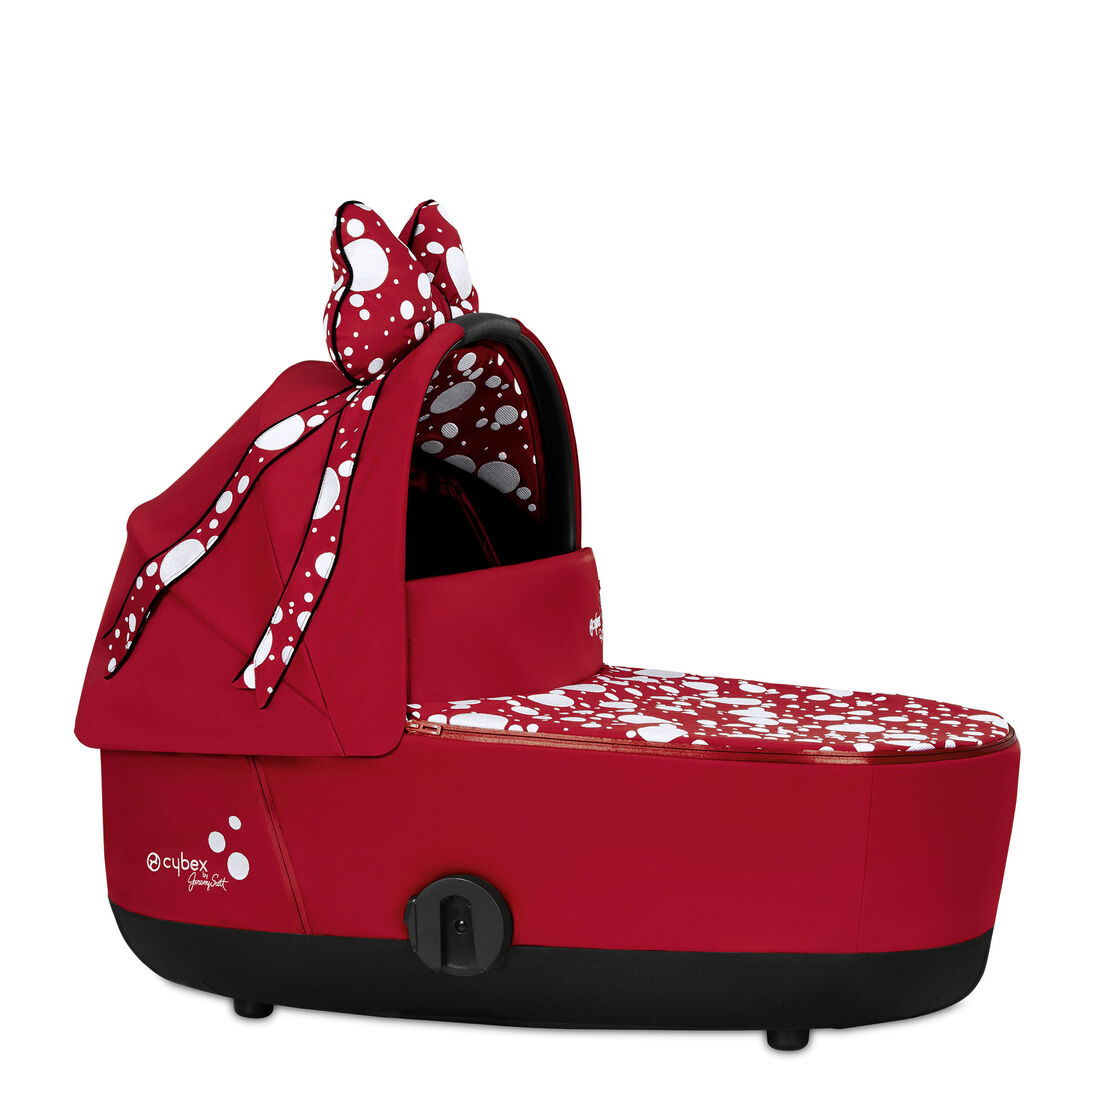 CYBEX Mios Lux Carry Cot - Petticoat Red in Petticoat Red large image number 1